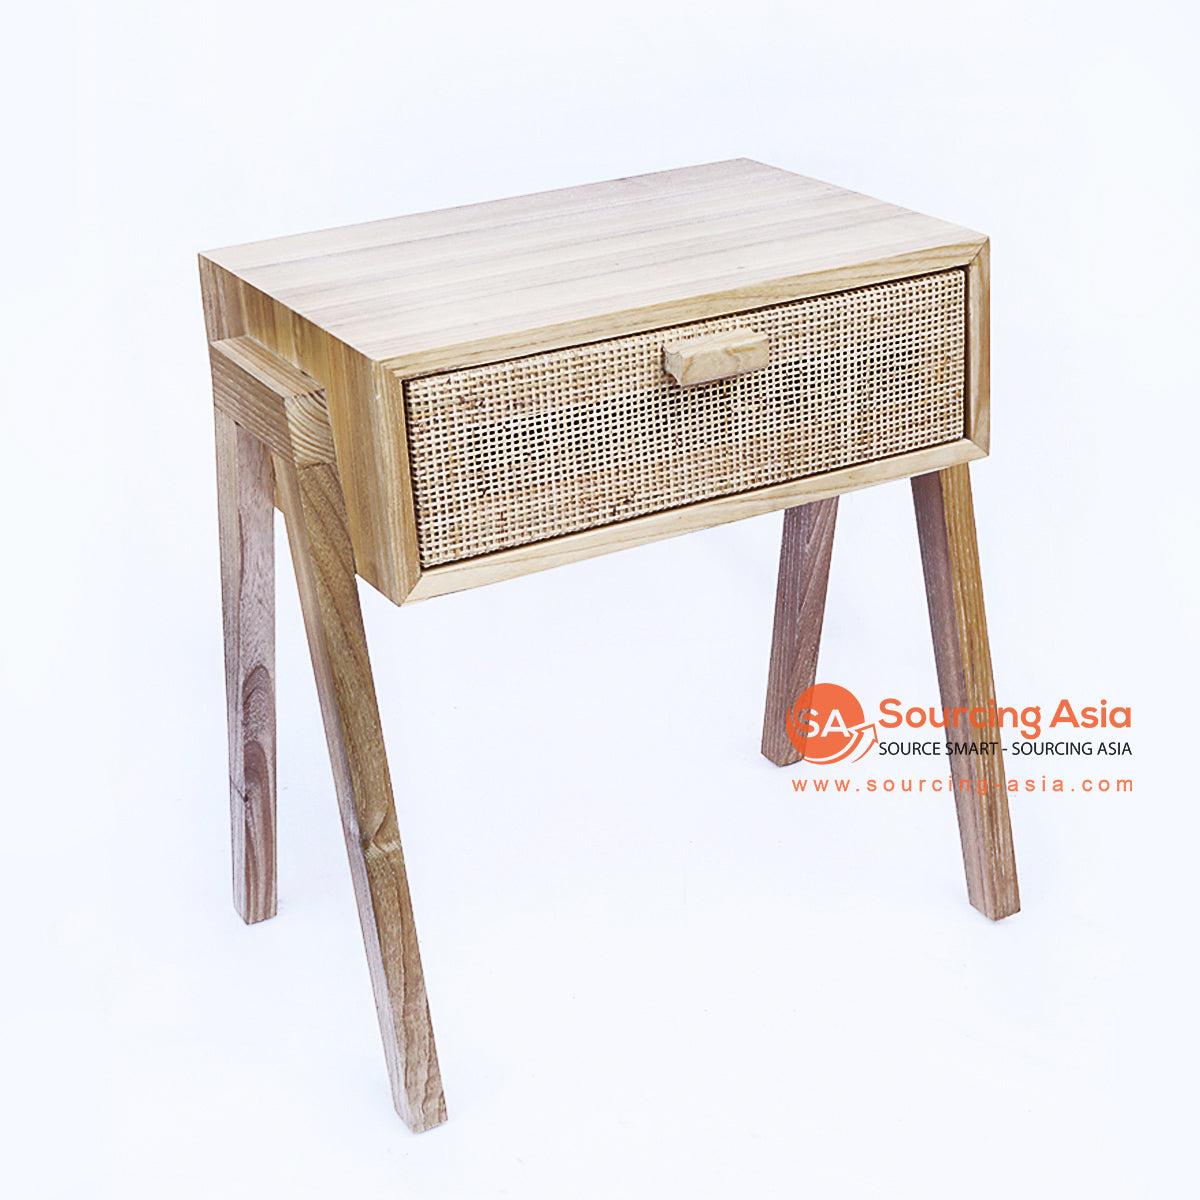 BNT265-1 RATTAN AND TEAK WOOD BEDSIDE TABLE